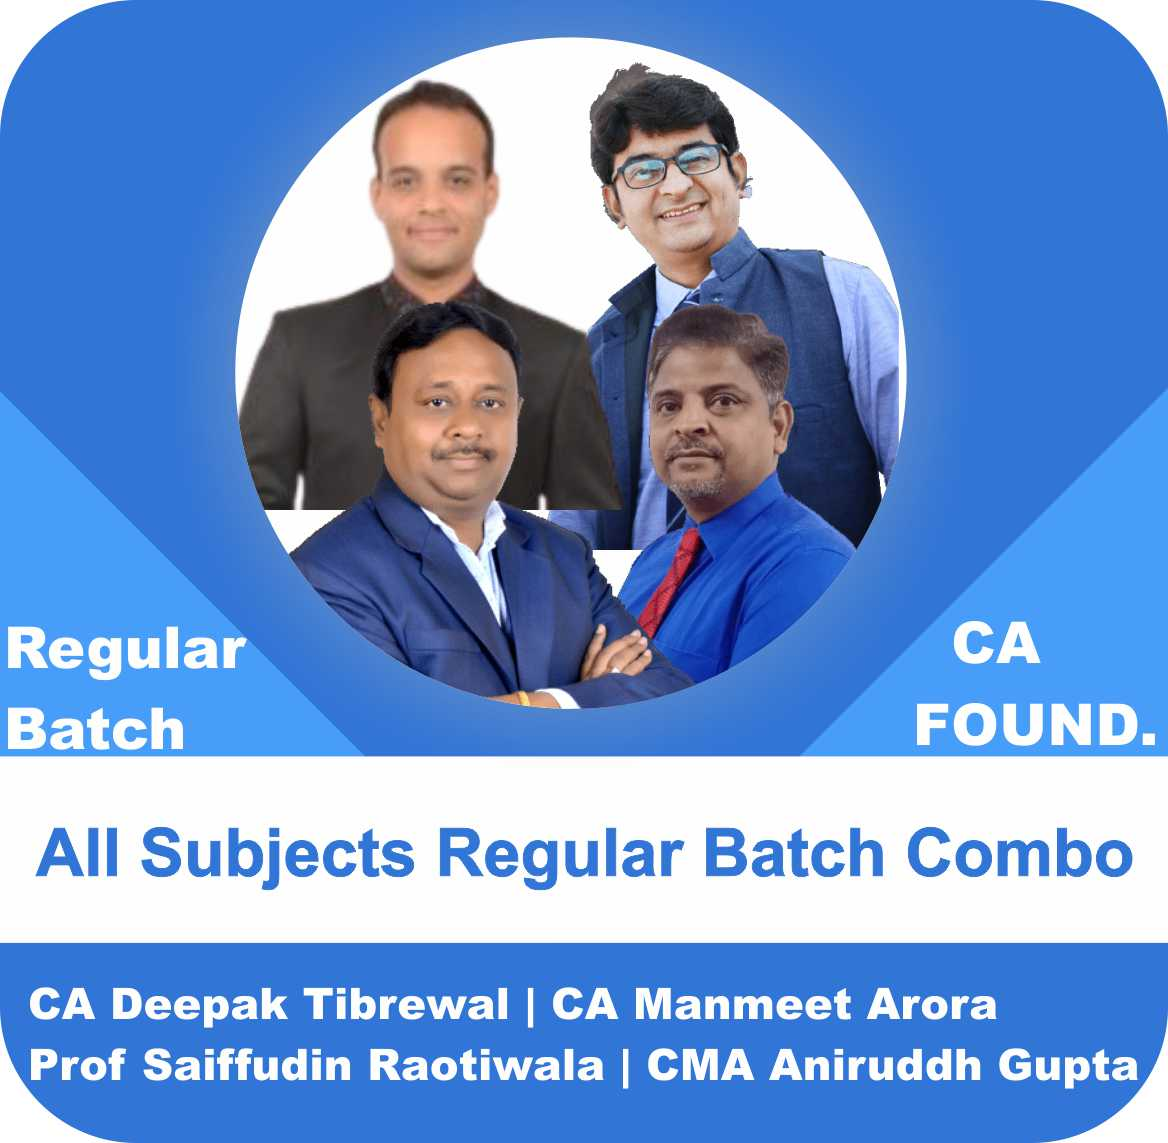 All Subjects Regular Batch Combo